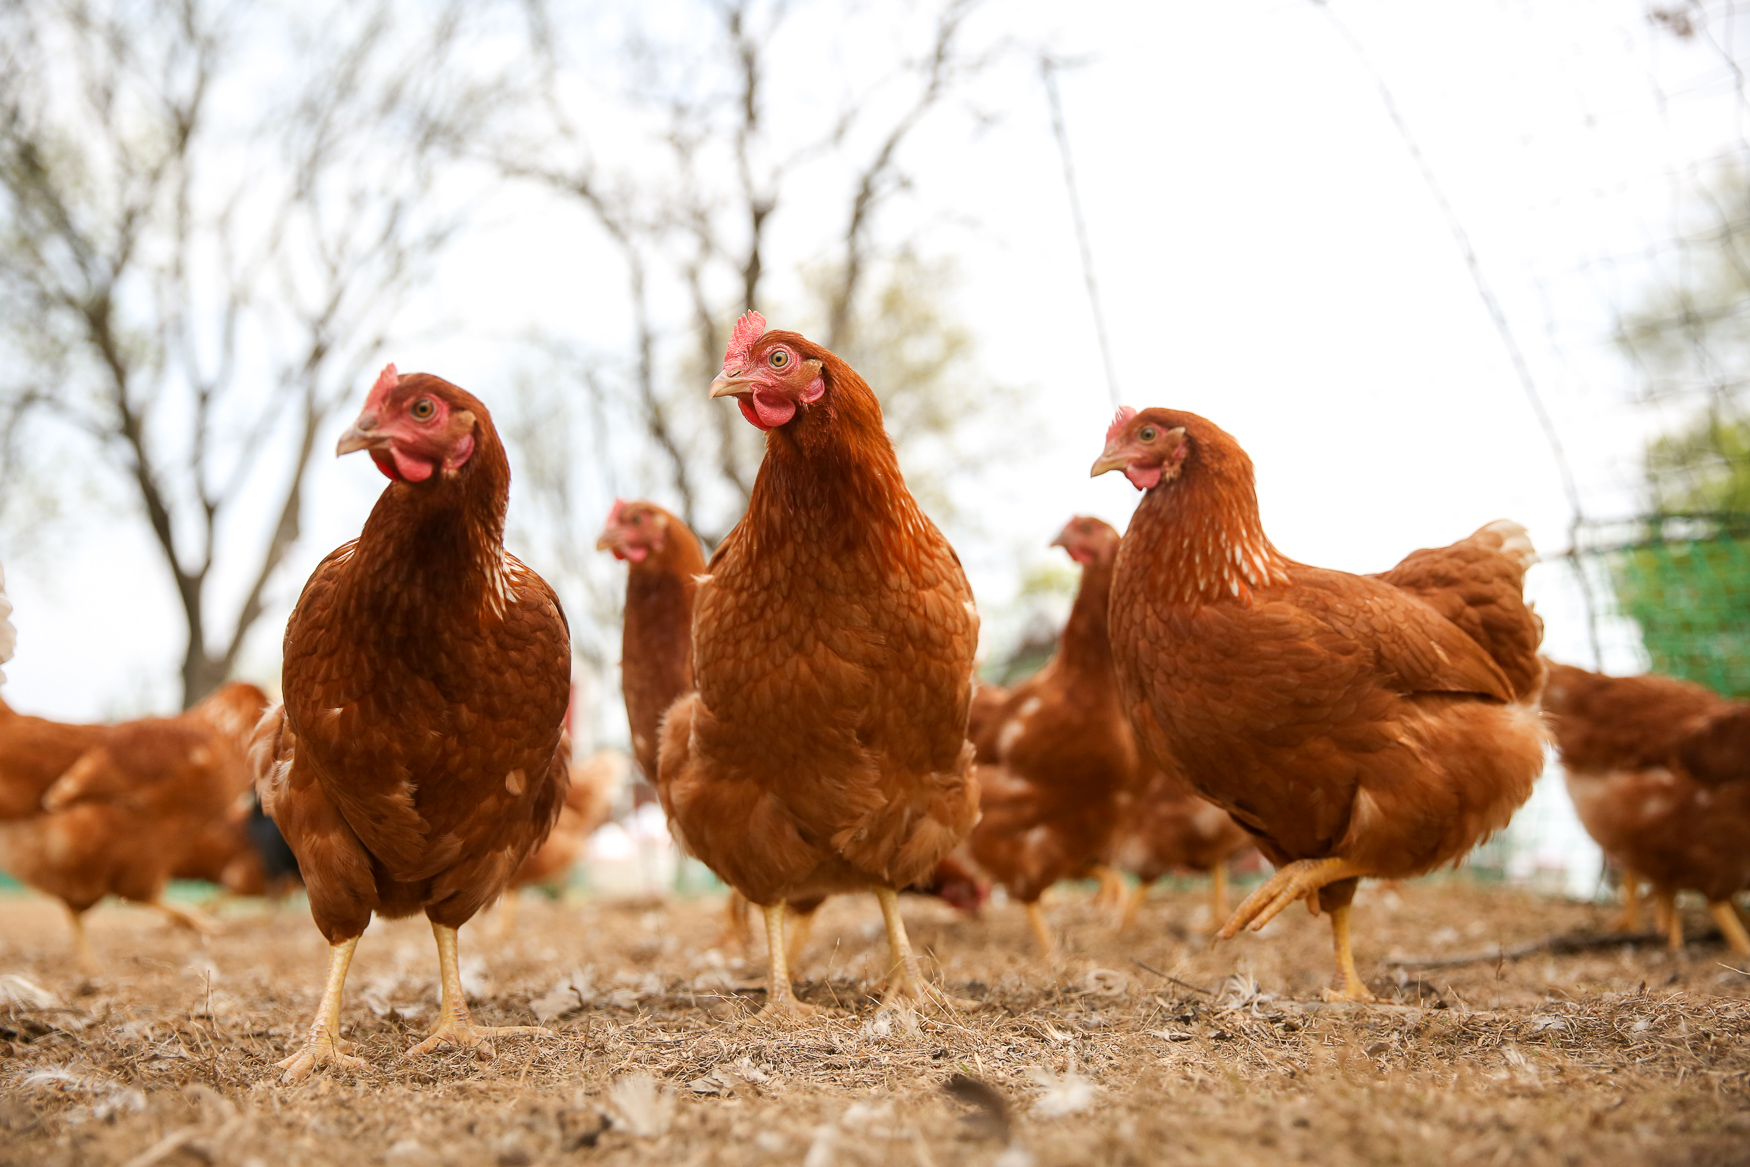 Customers usually received Golden Comets or Red Sex Link breed hens.{ } (Image: Amanda Andrade-Rhoades/ DC Refined)